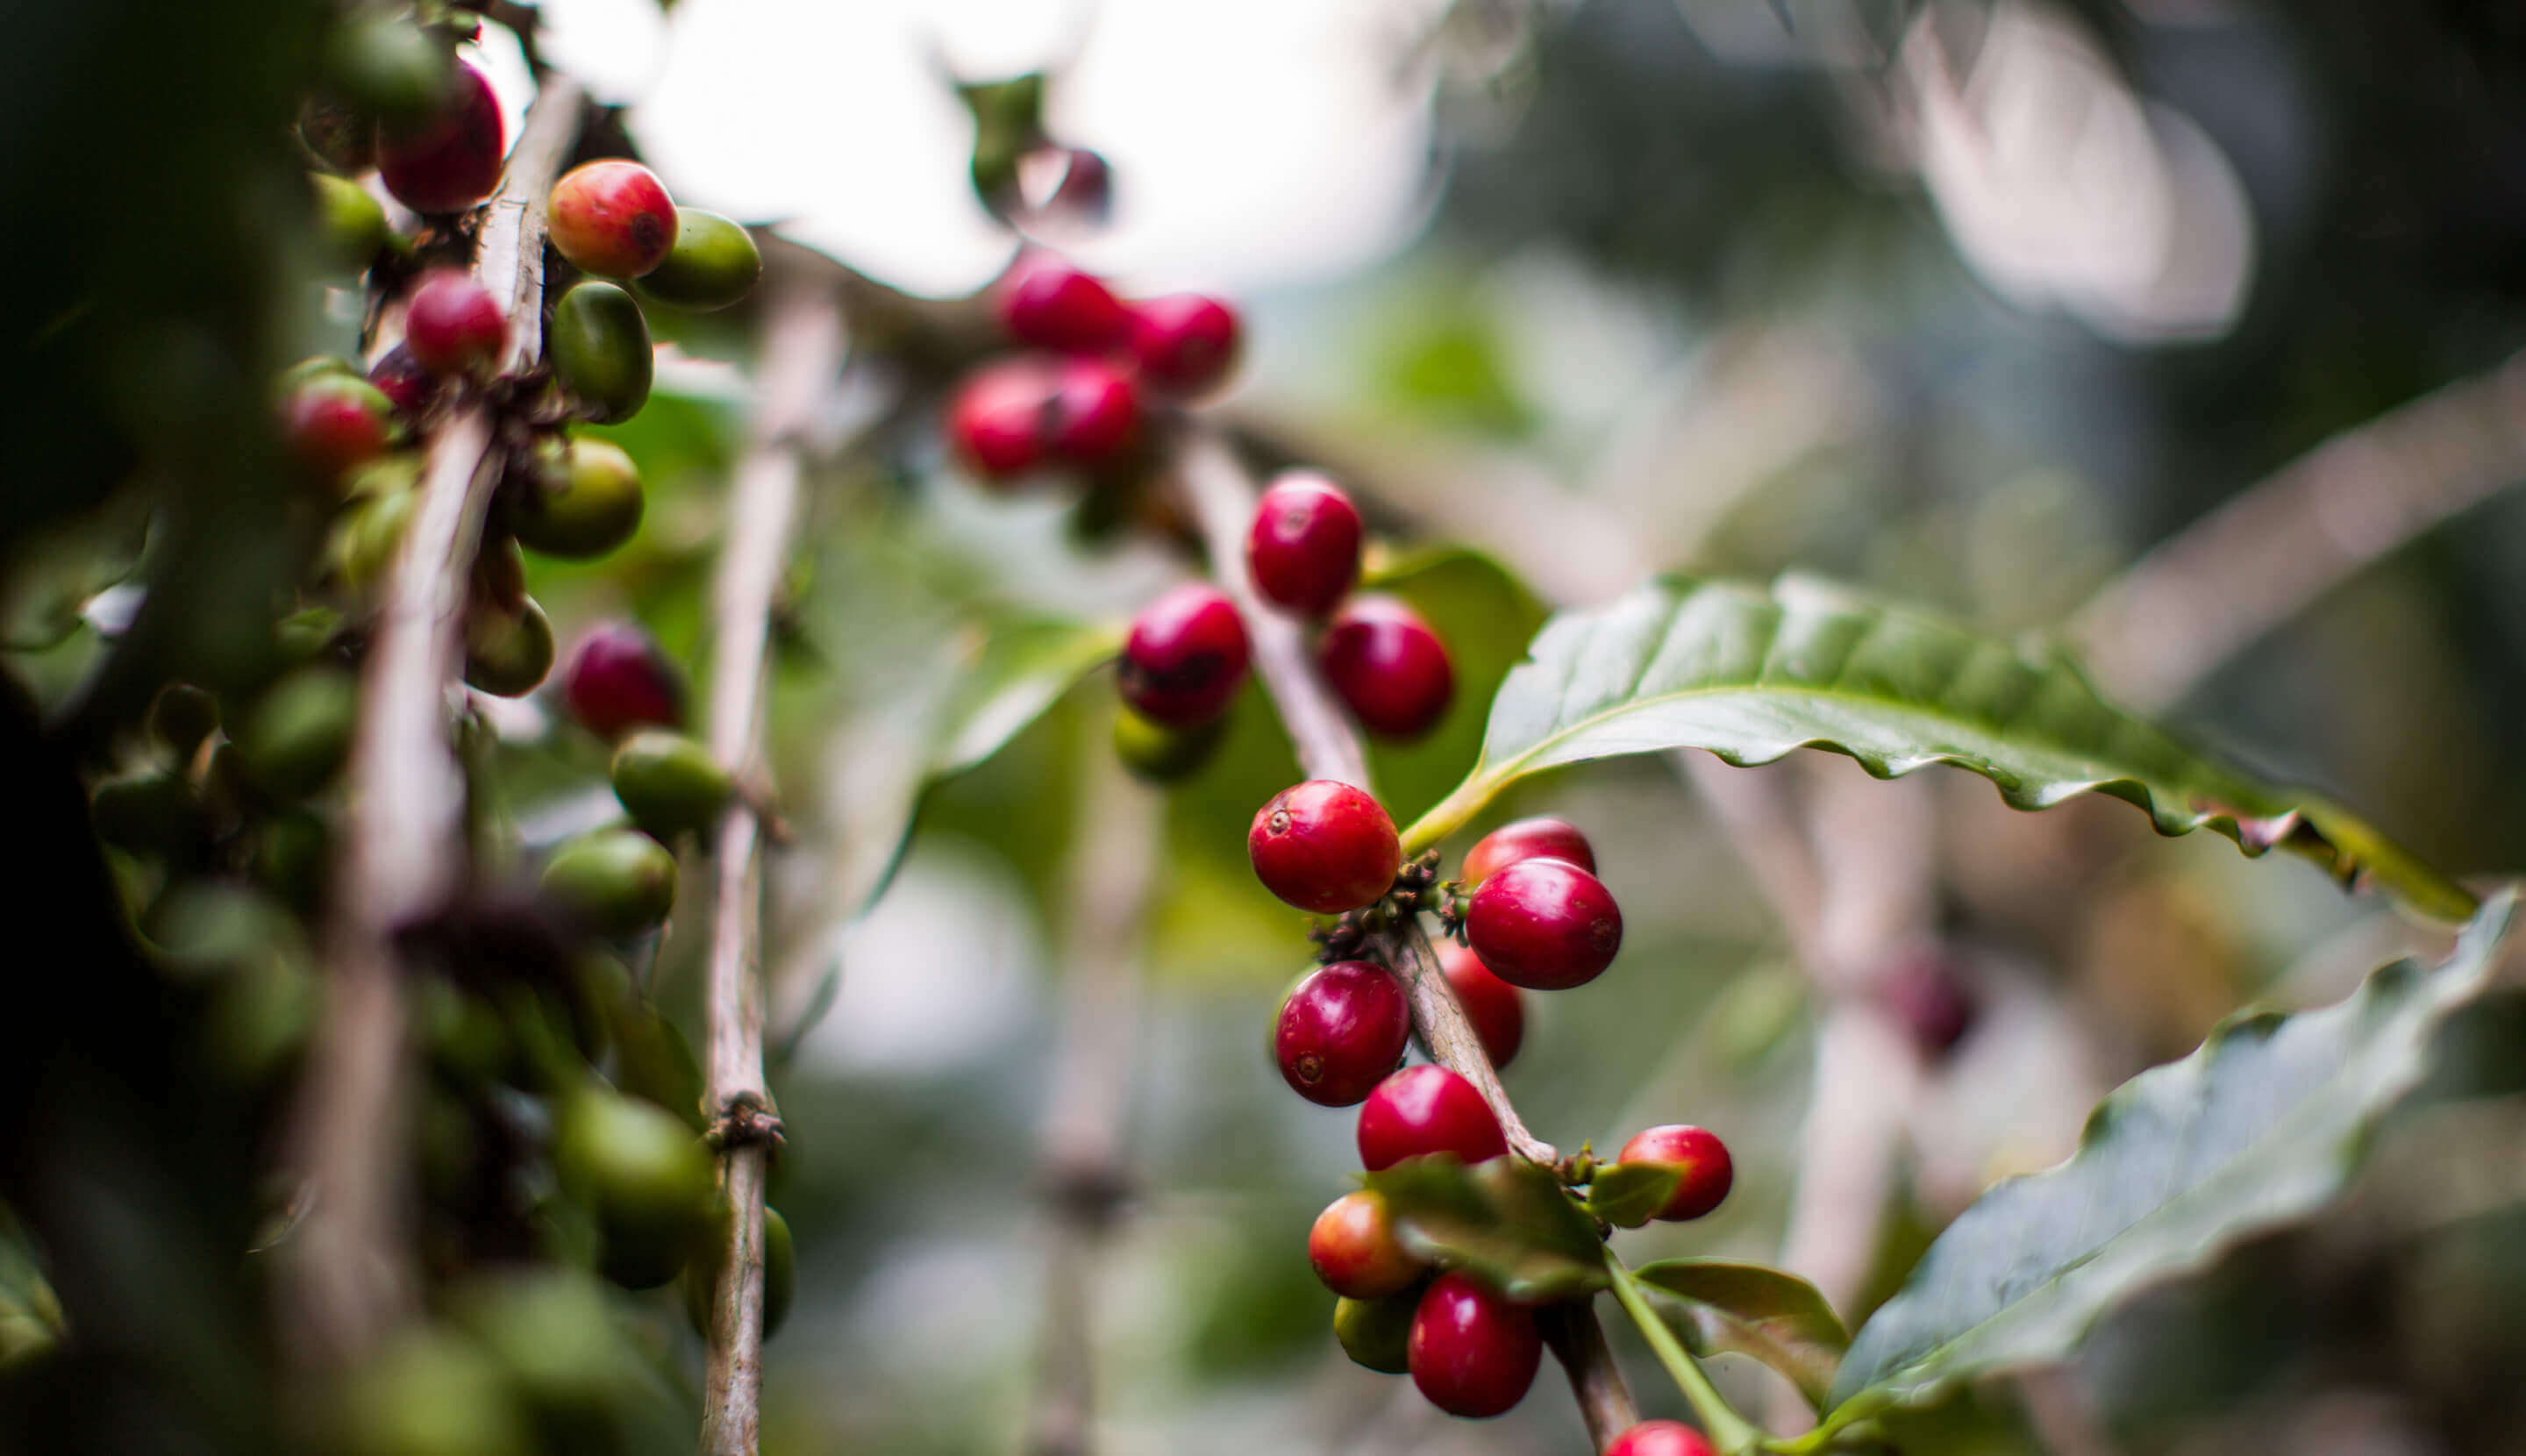 SOME EXTRA INTRIGUING FACTS ABOUT ARABICA